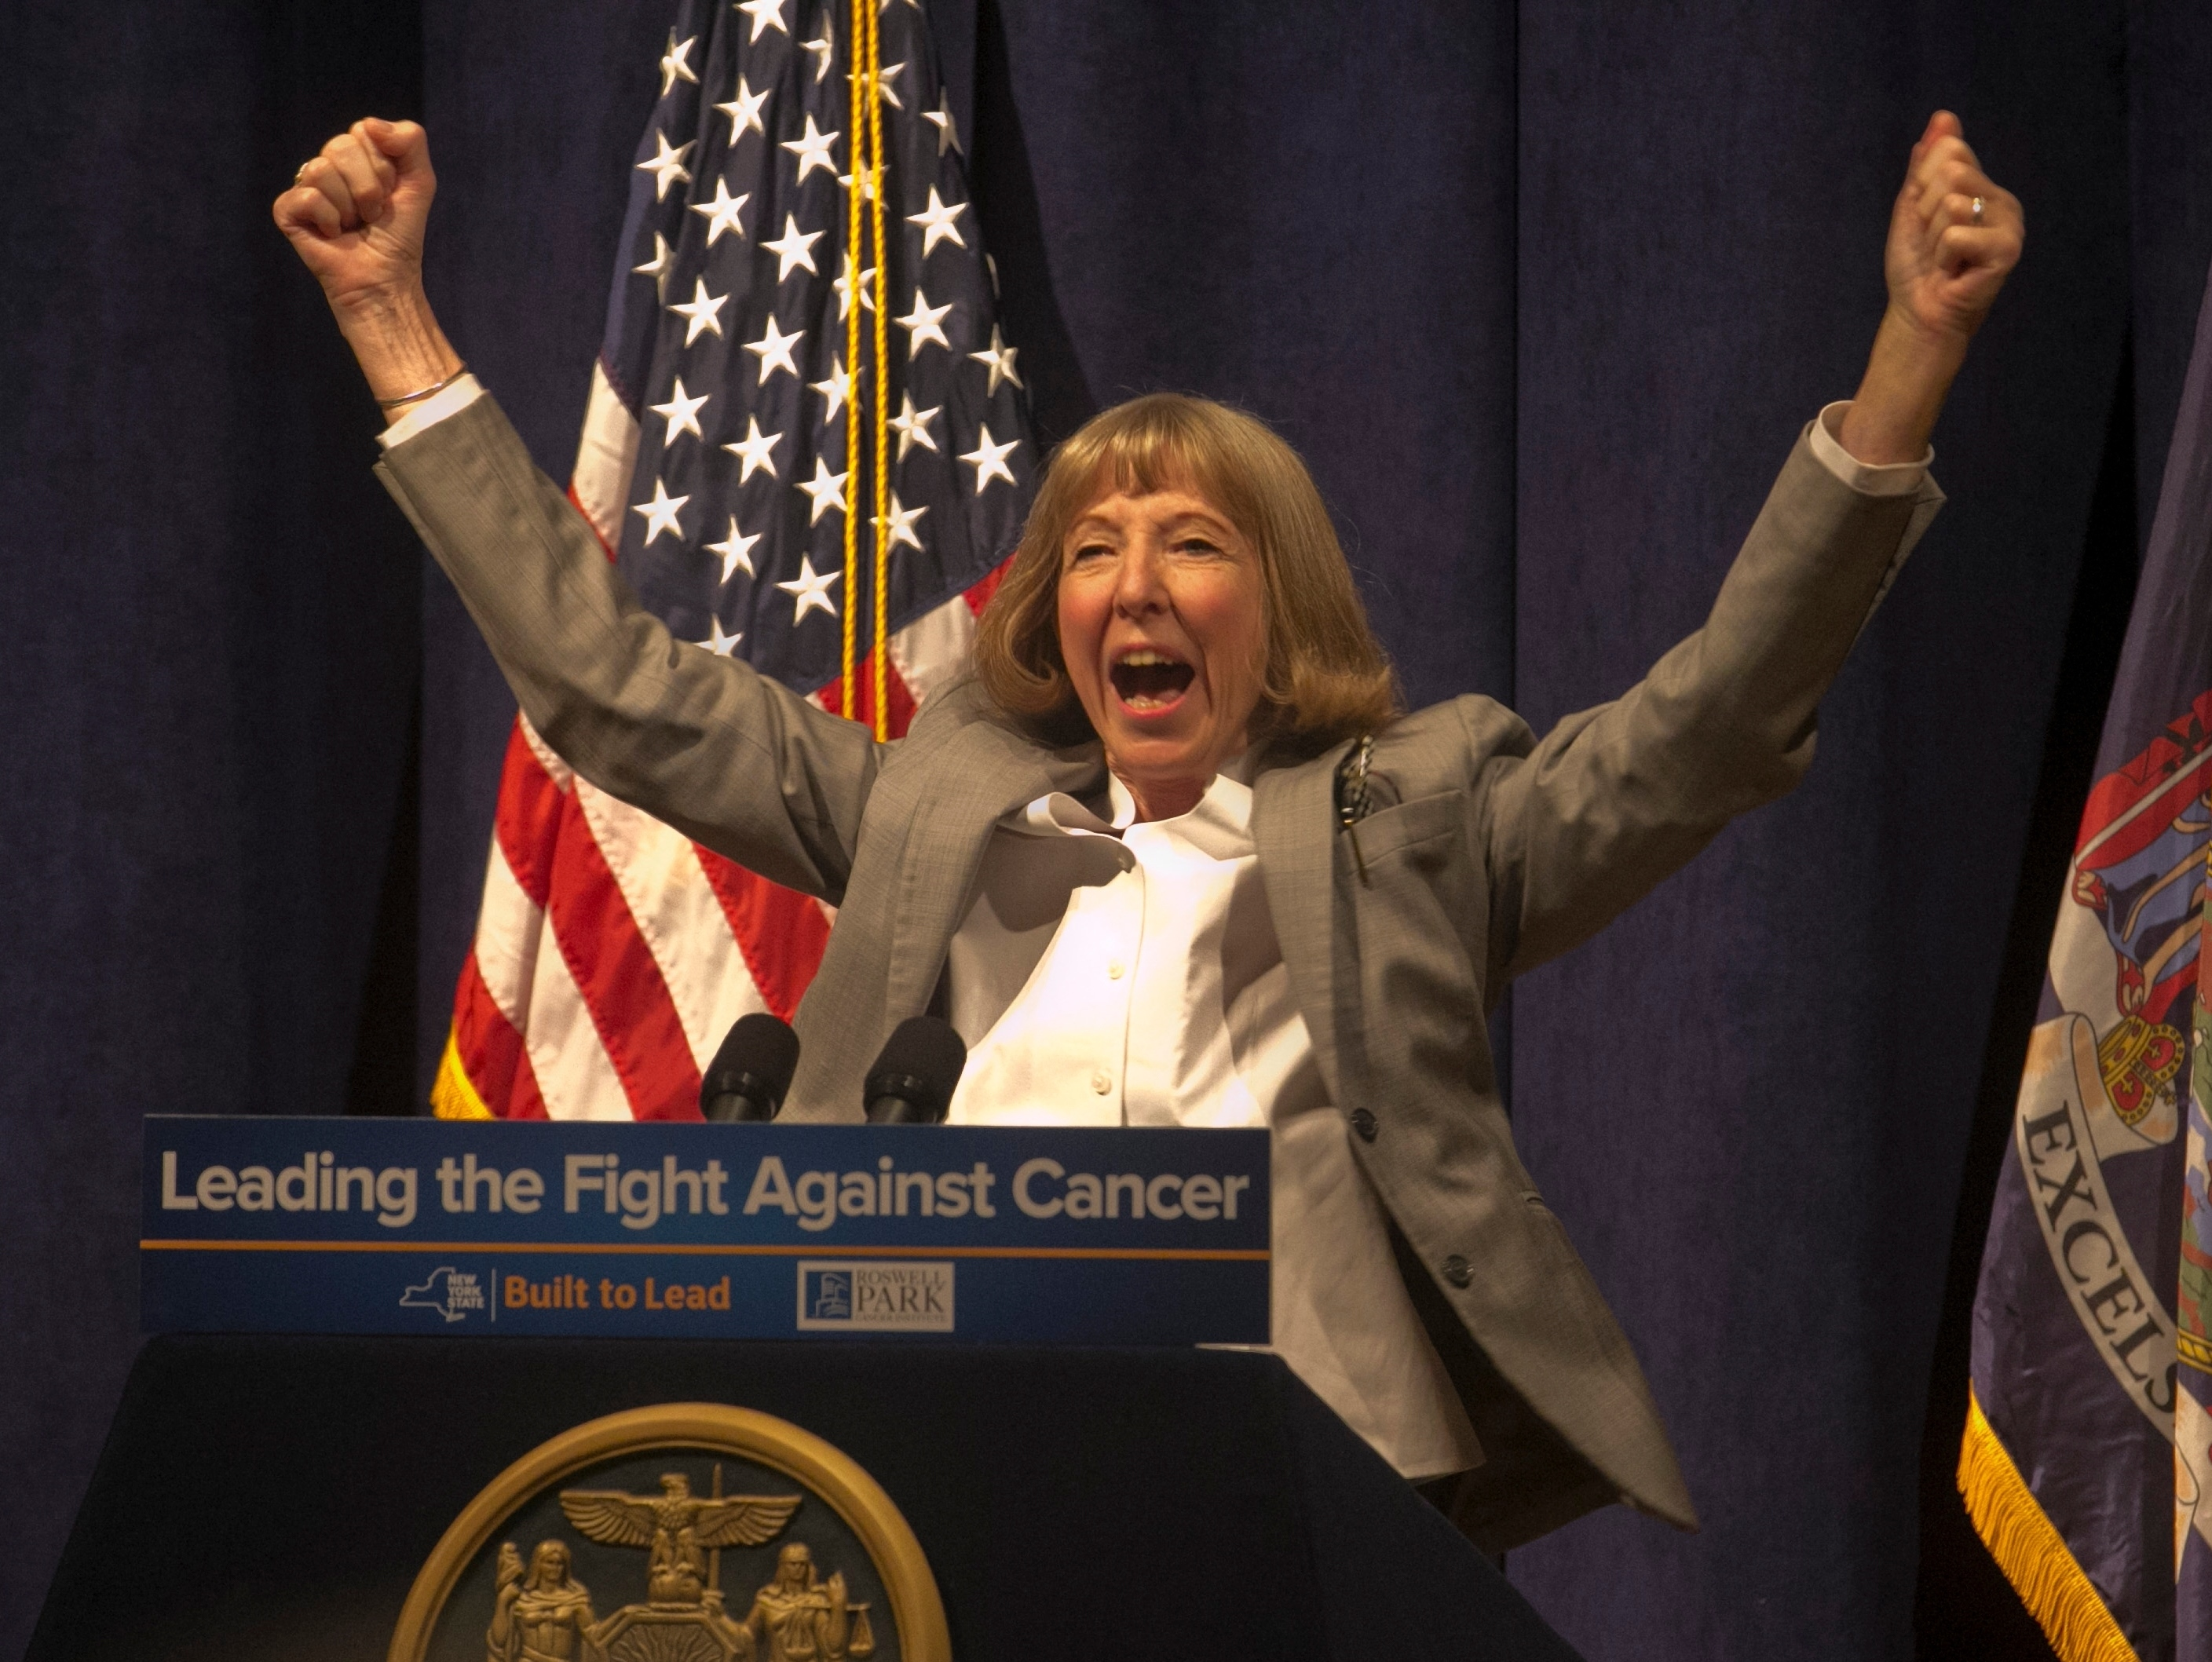 A jubilant Dr. Candace Johnson, president and CEO of Roswell Park Cancer Institute, announces FDA approval of clinical trial of a lung cancer vaccine from Cuba. (John Hickey/Buffalo News)